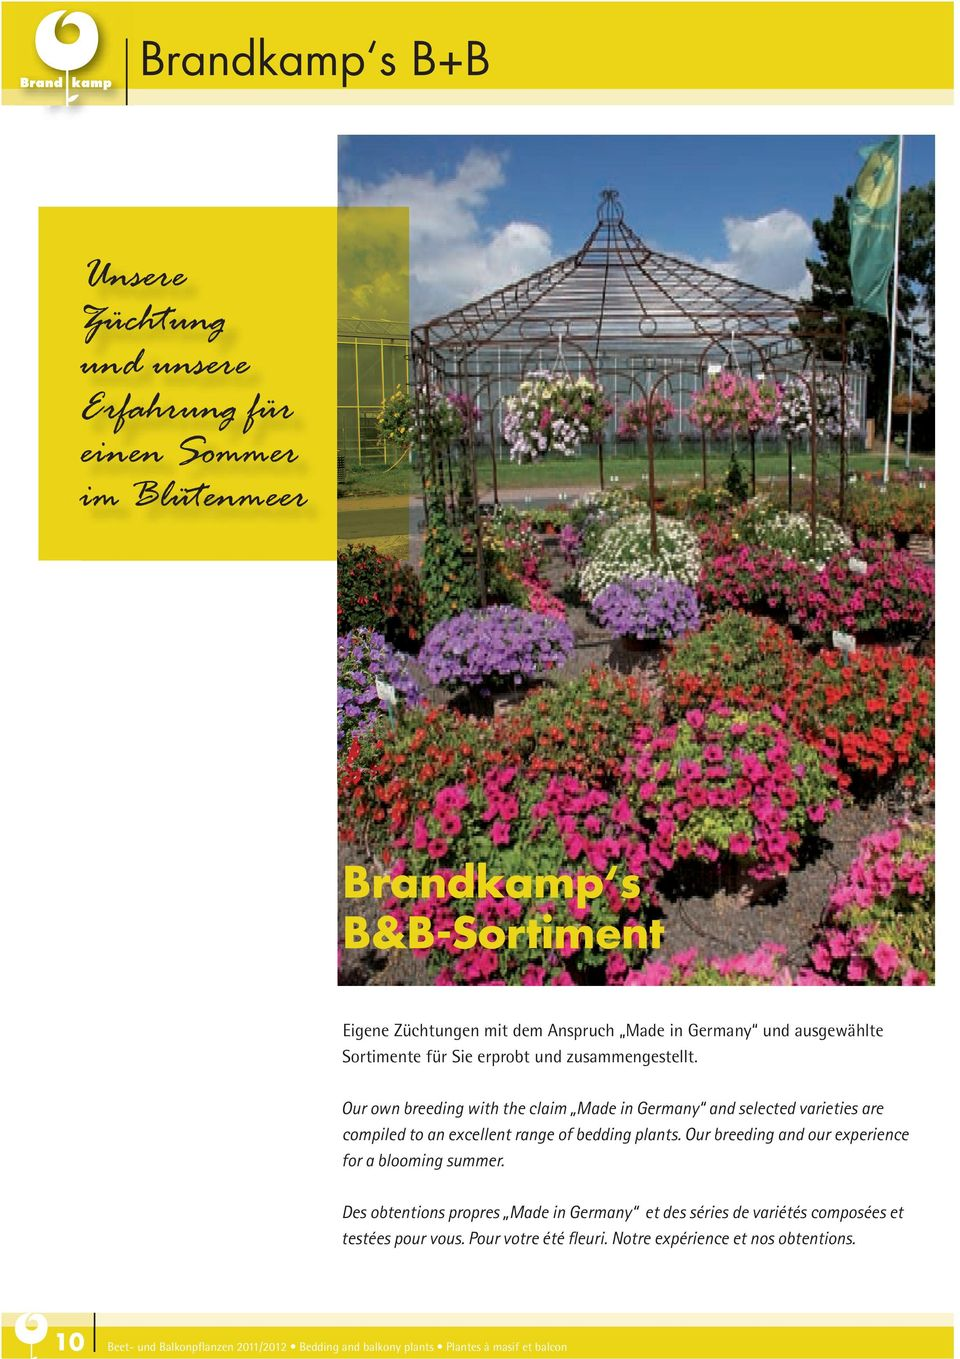 Our own breeding with the claim Made in Germany and selected varieties are compiled to an excellent range of bedding plants.